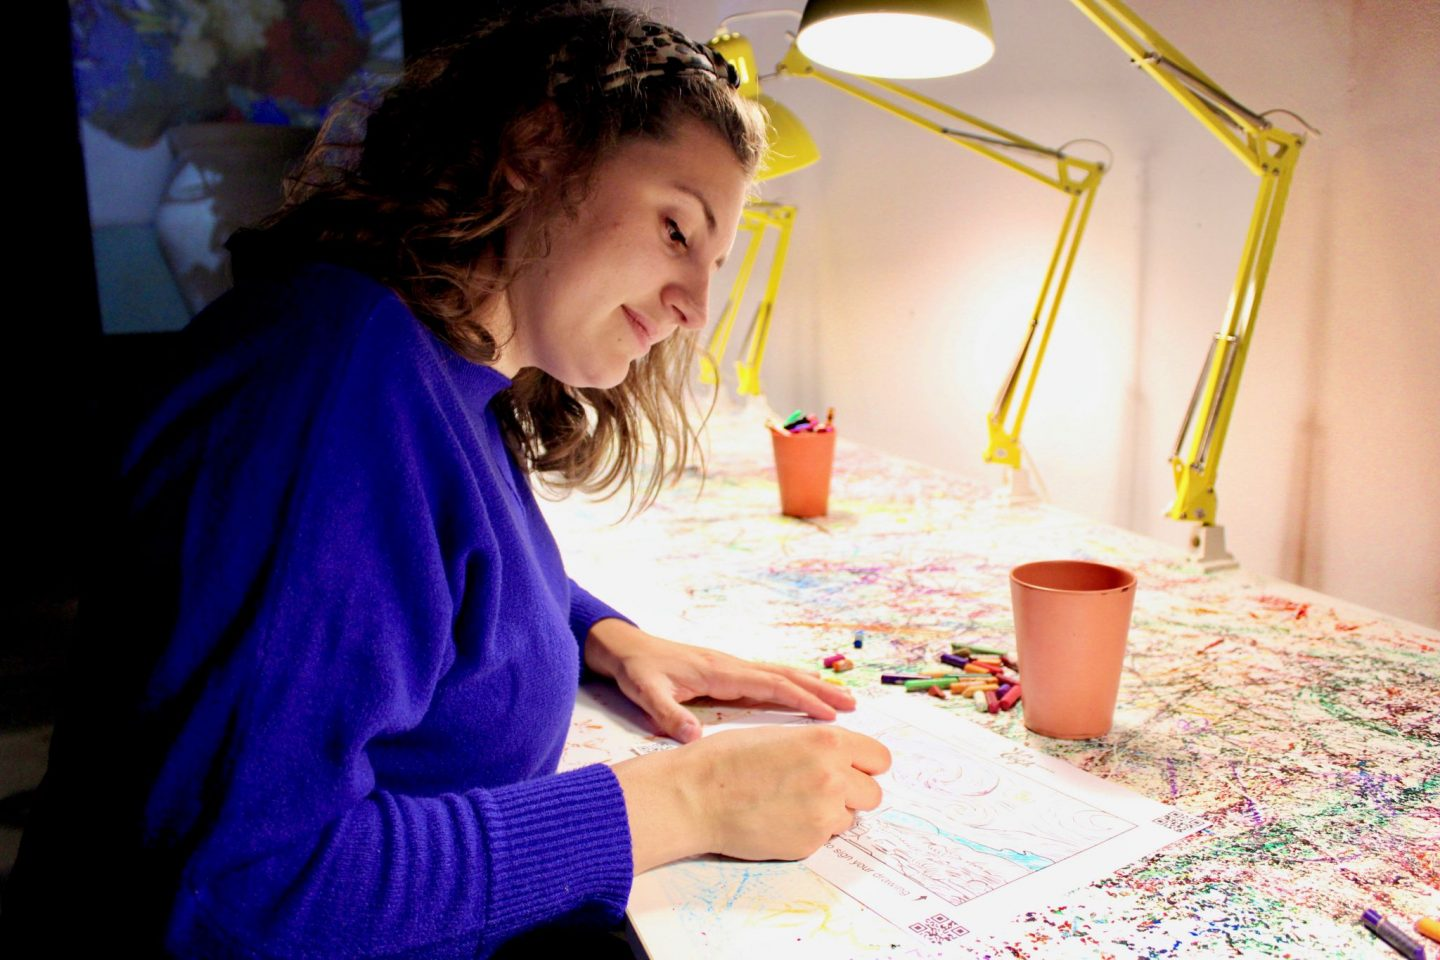 Girl concentrating on colouring in Van Gogh's Starry Night at the Van Gogh Immersive Experience in York. She's wearing a blue jumper and looking down at the drawing.